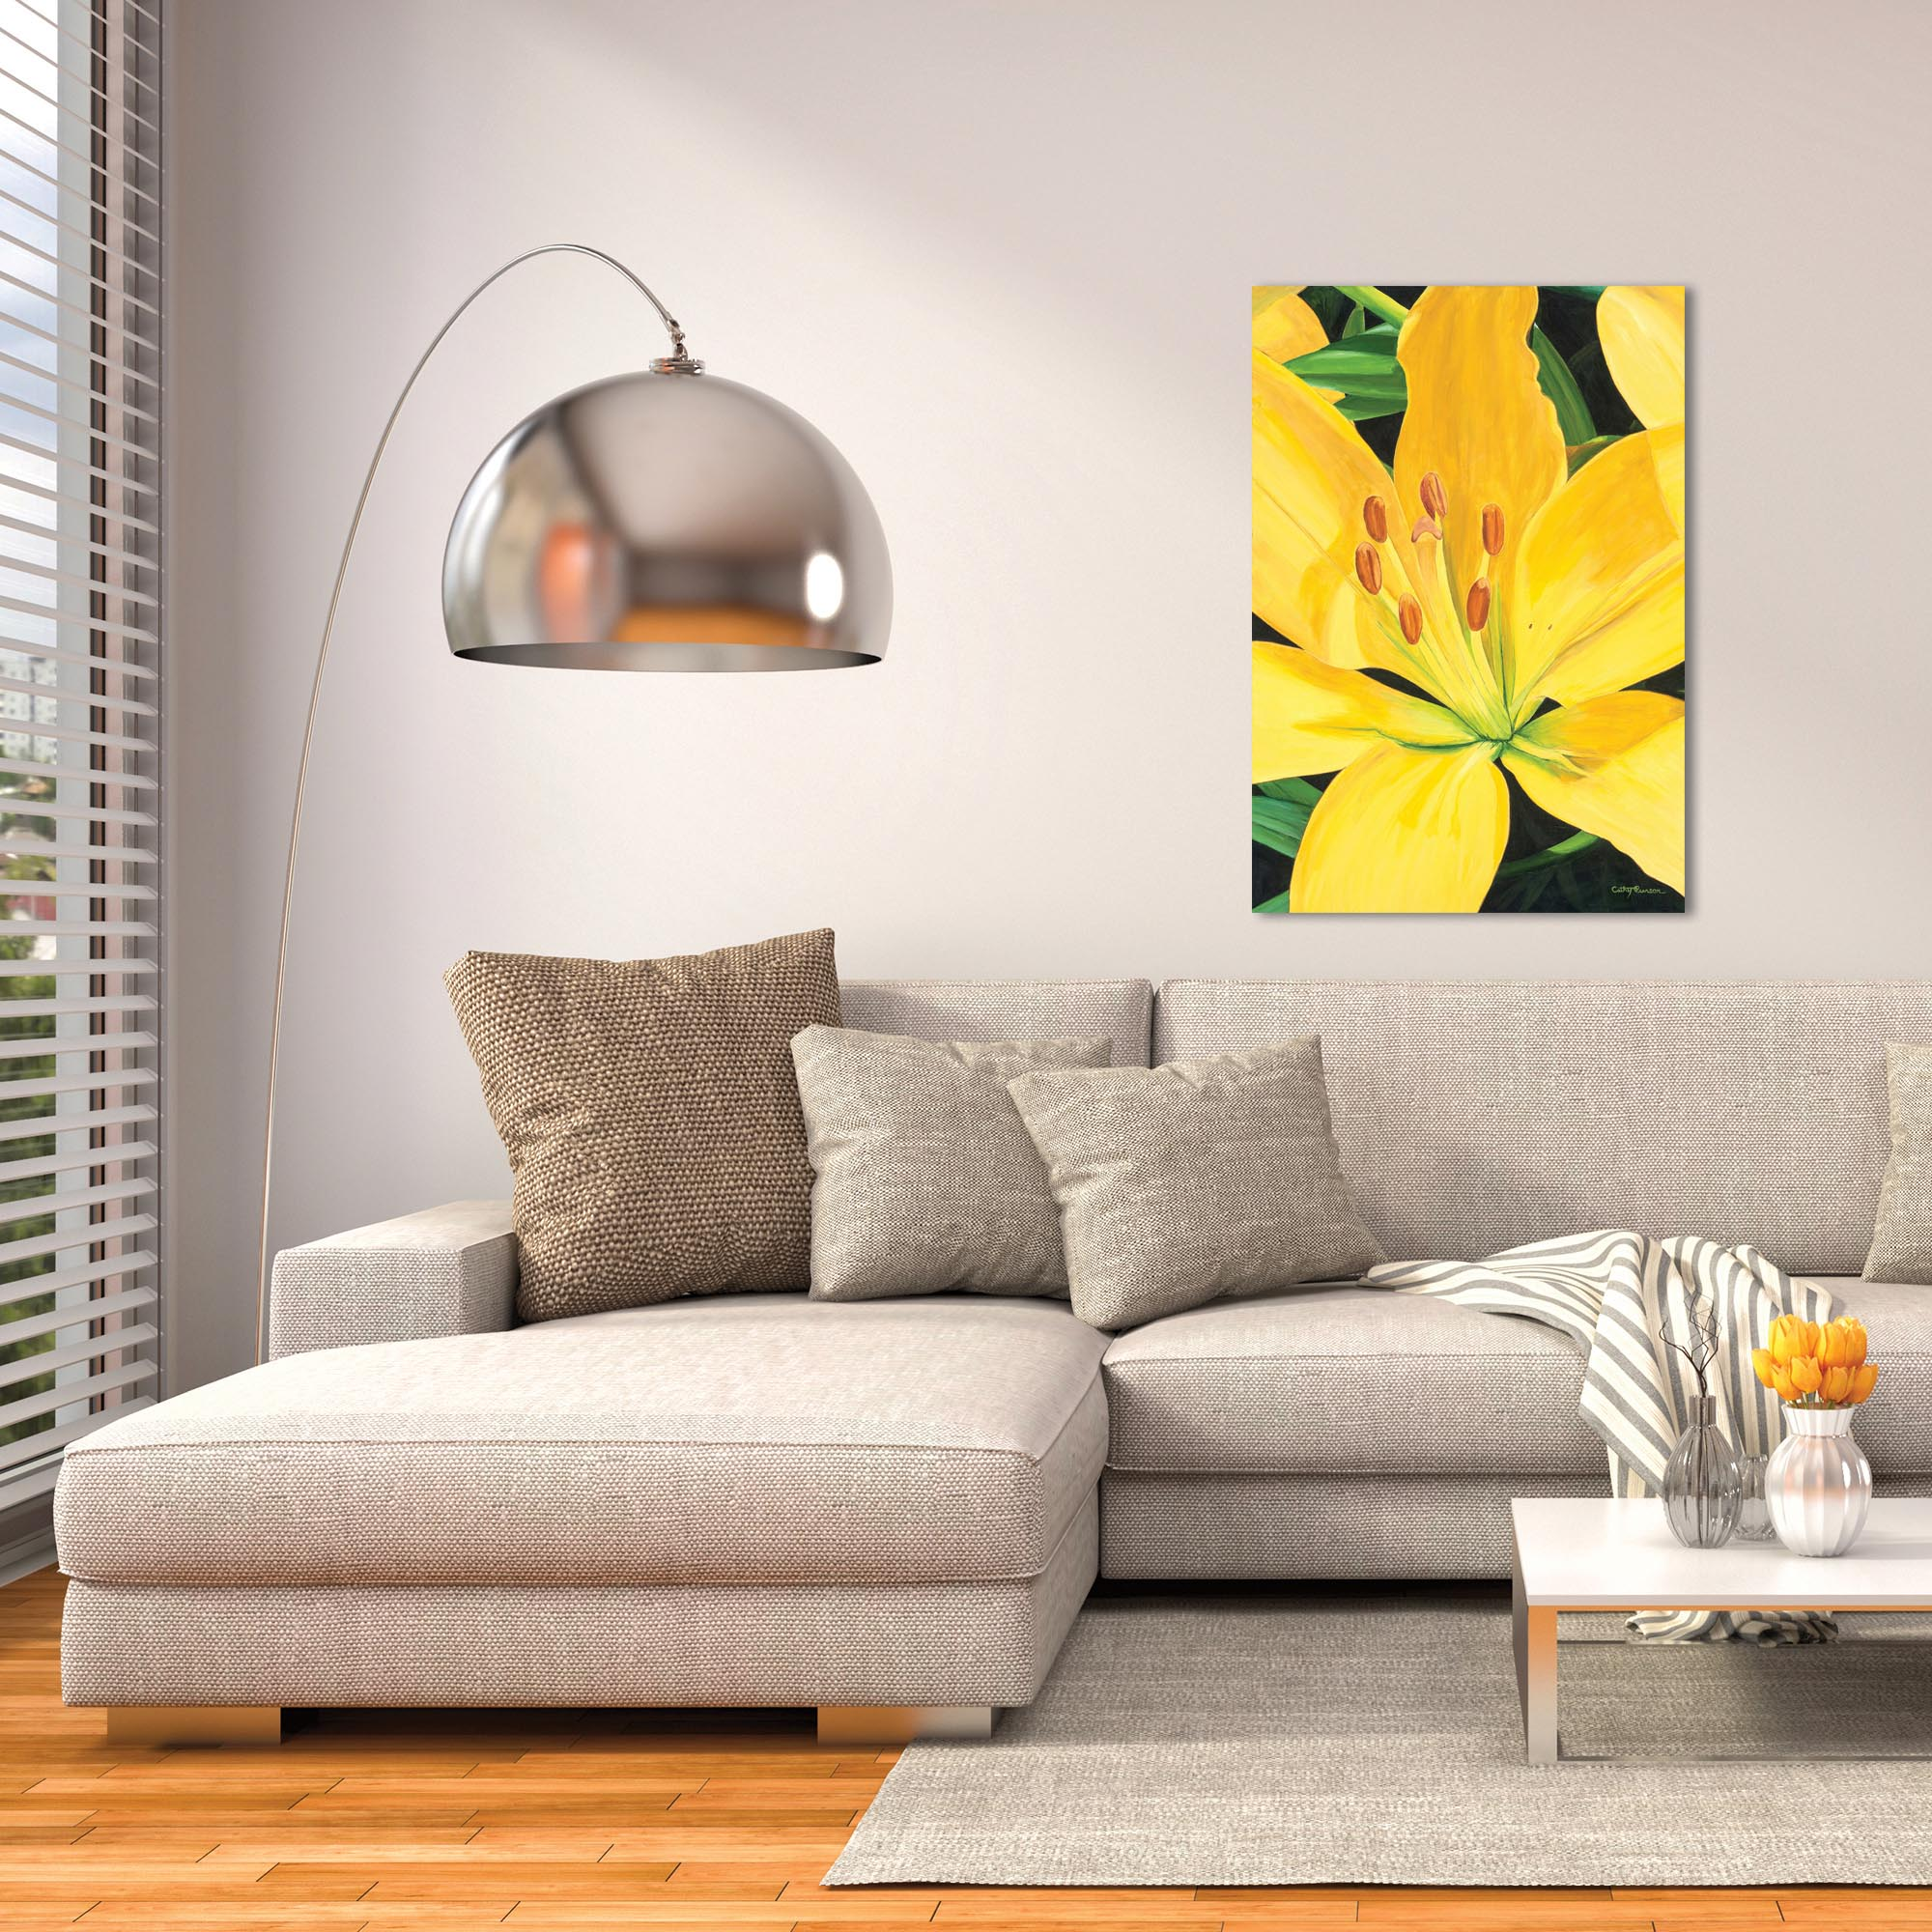 Traditional Wall Art 'Heart of a Yellow Lily' - Floral Decor on Metal or Plexiglass - Lifestyle View